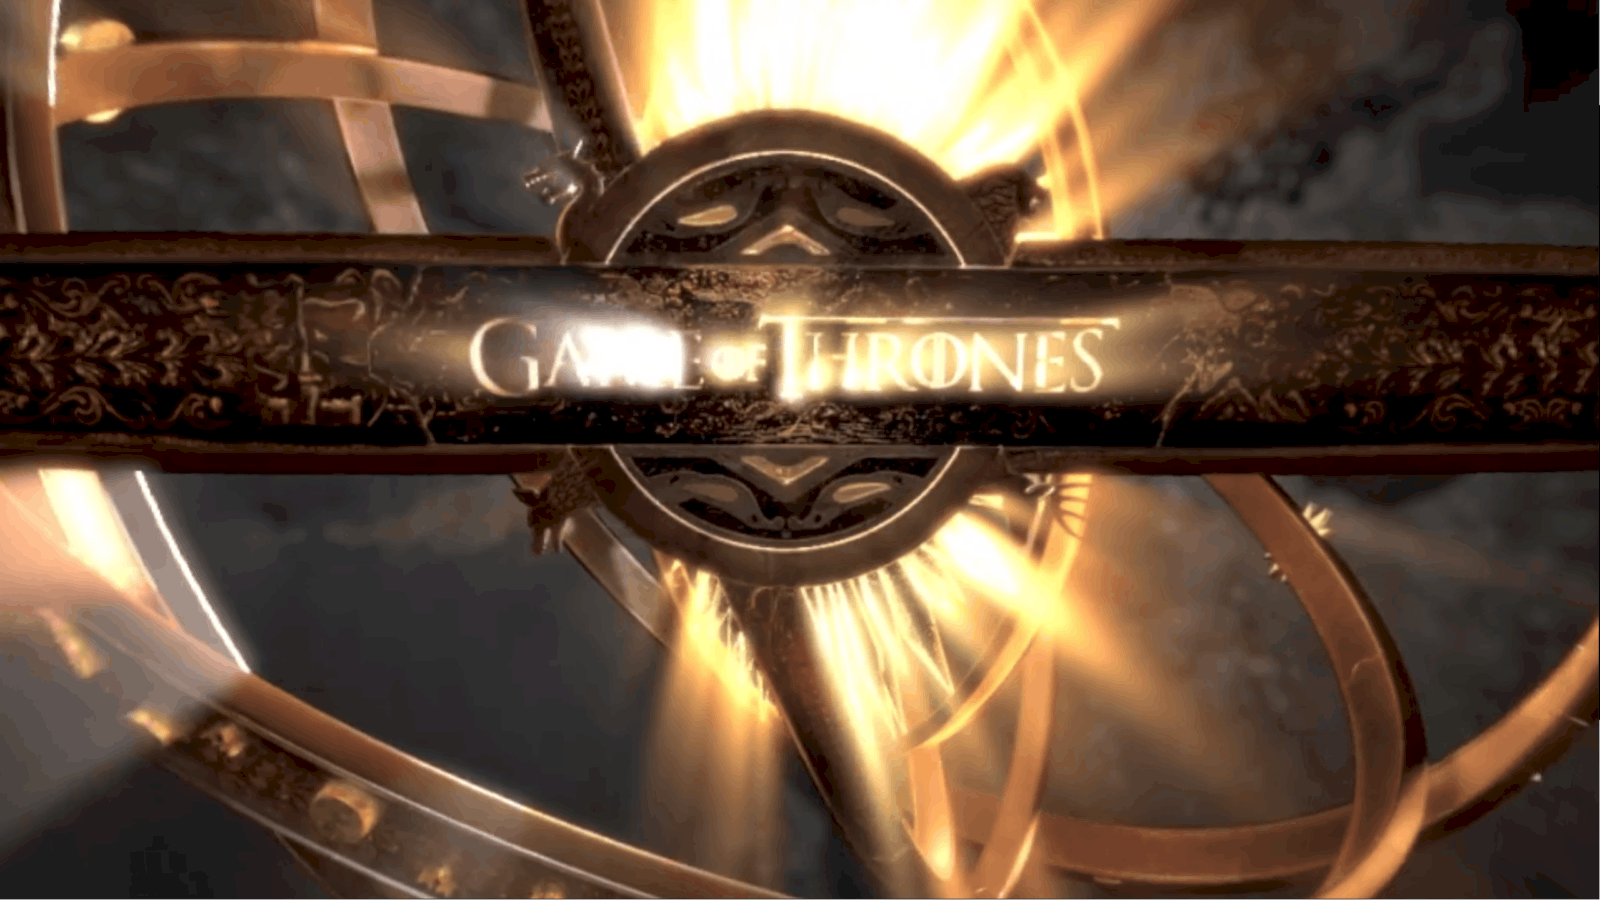 Game of Thrones 360 video